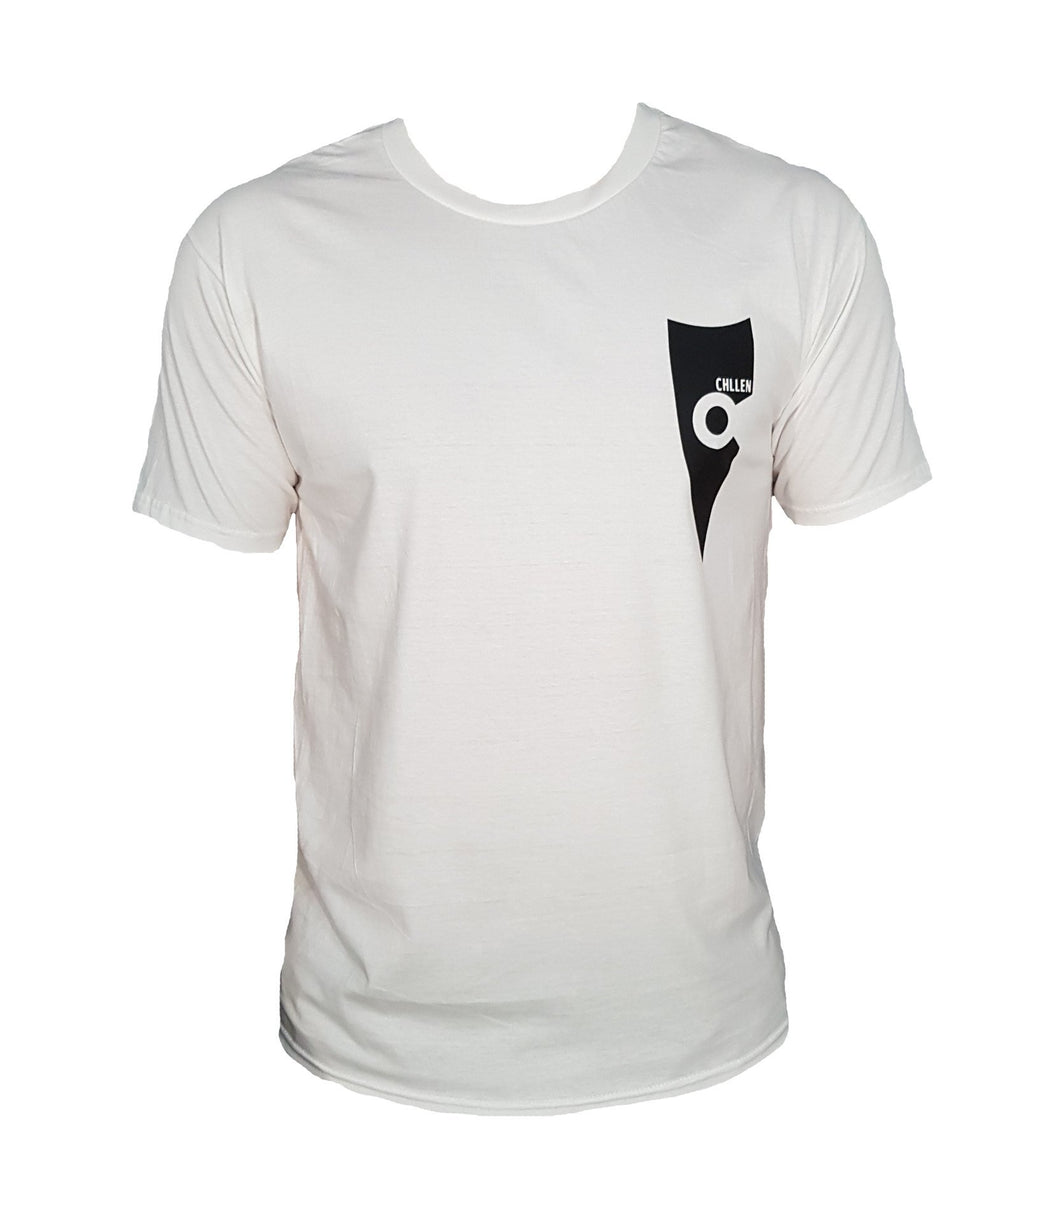 chillen chllen lifestyle wear kids casual white-black shirt t-shirt tee